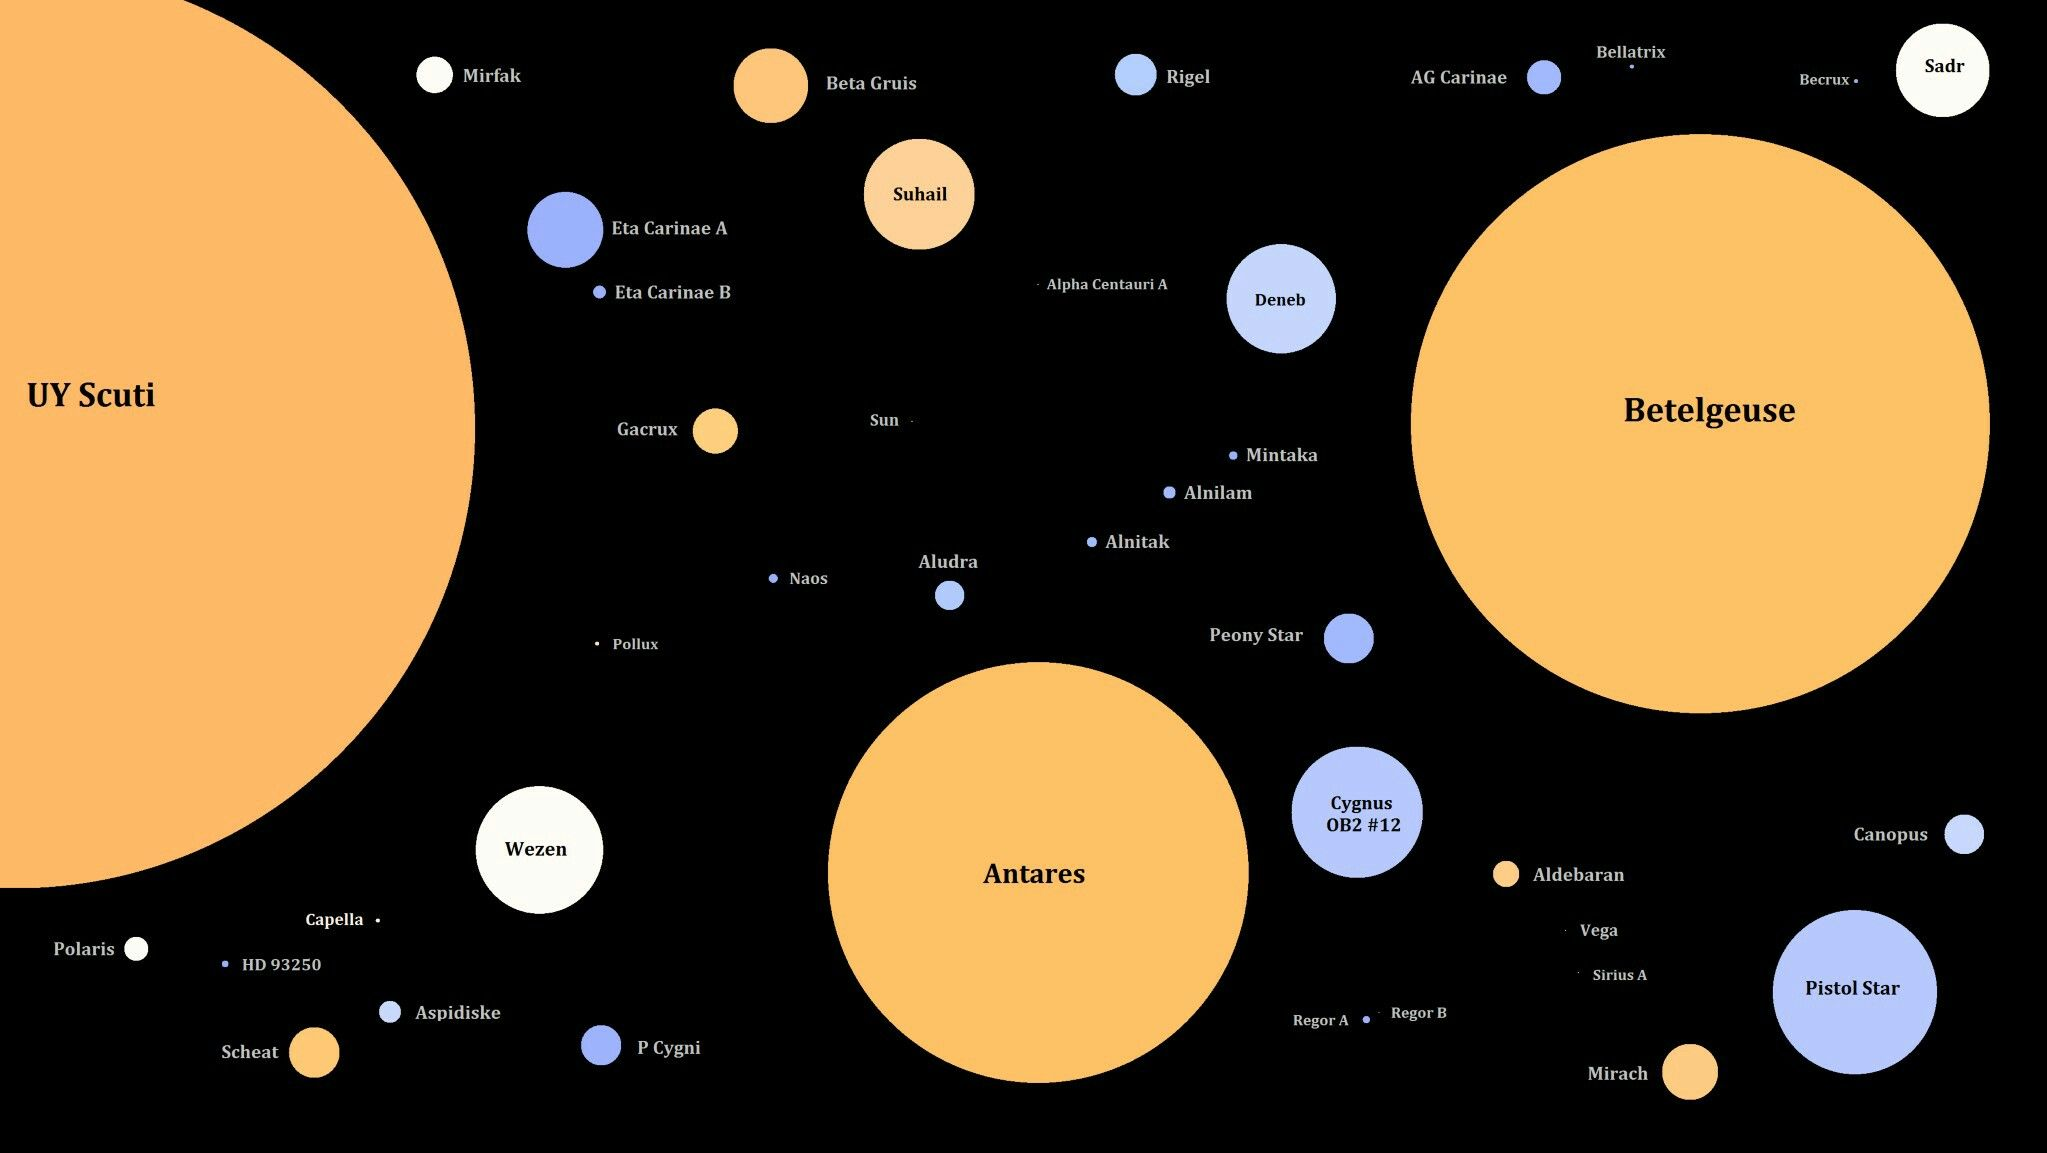 size comparison of many well known stars sizes are to scale in relation to each other the sun is an indiscernible speck in the middle about the size of  [ 2047 x 1153 Pixel ]